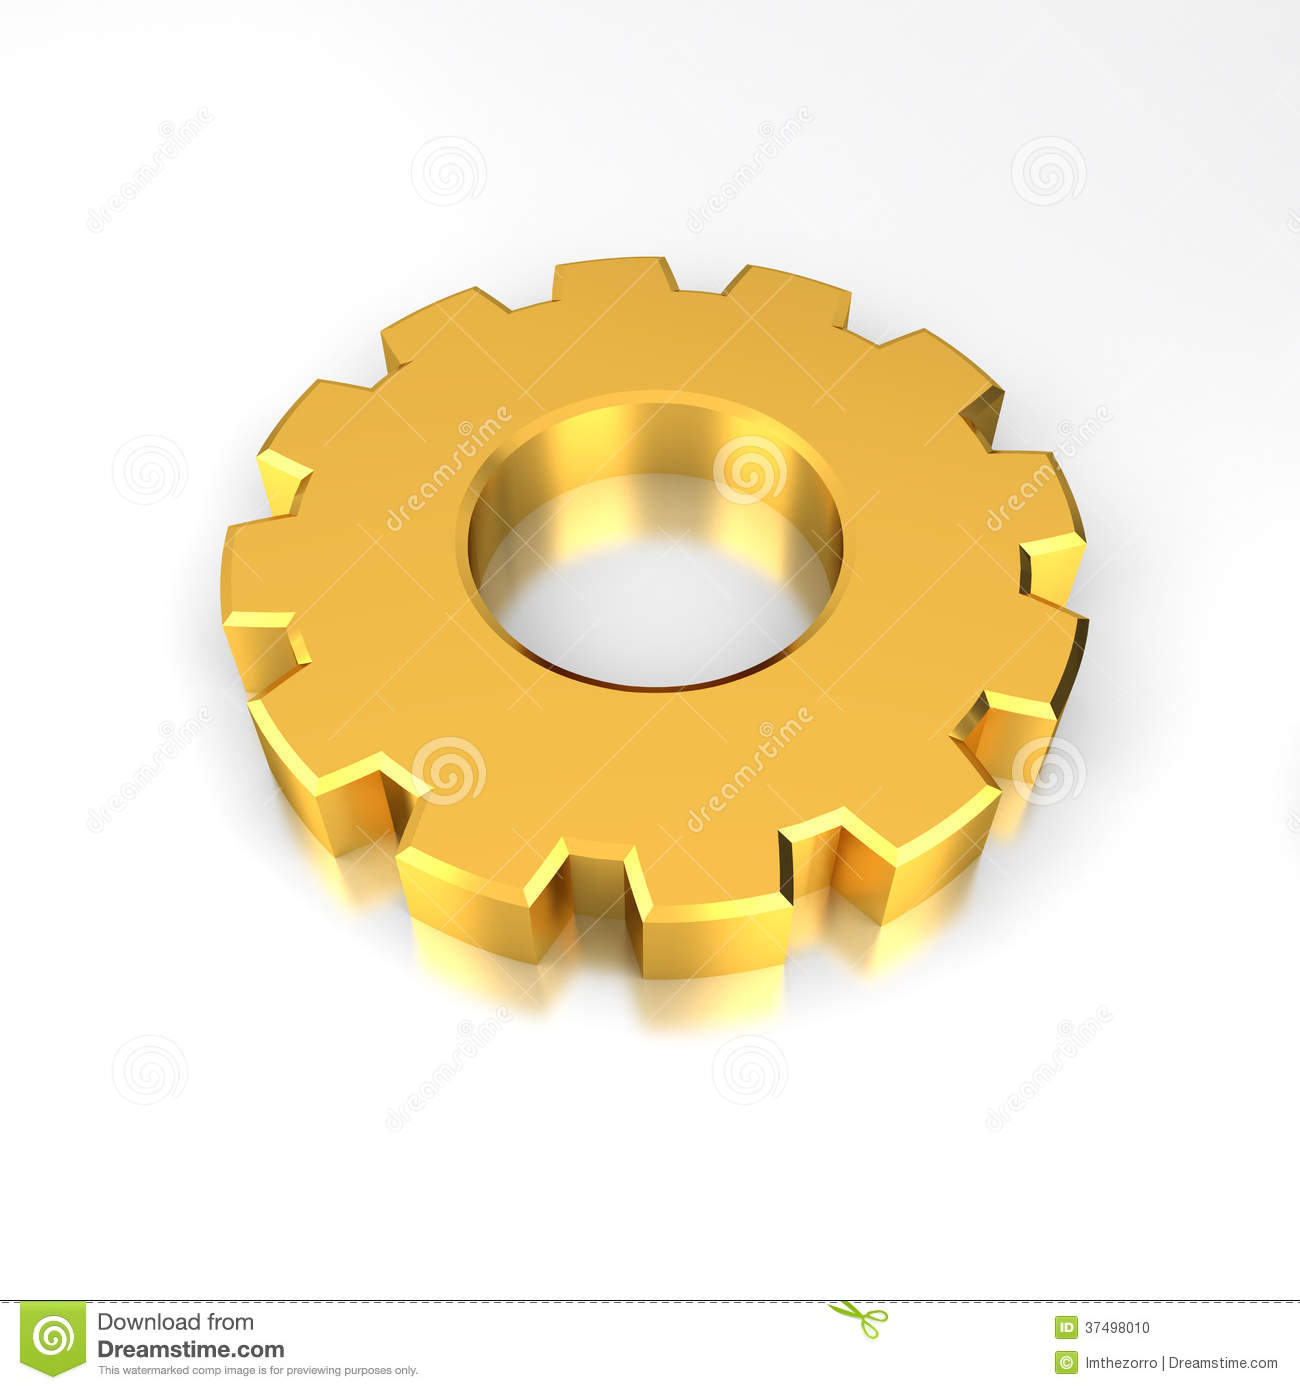 Gold Gear on reflective white background.